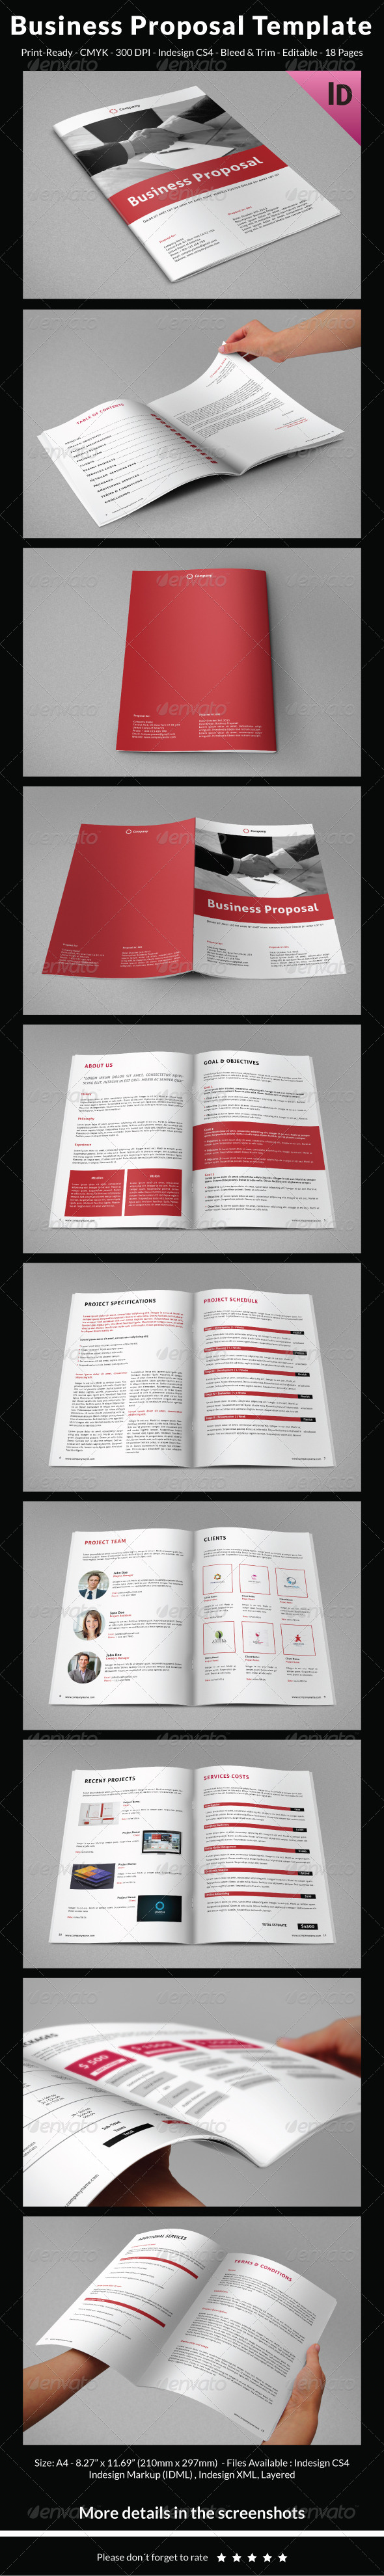 GraphicRiver Business Proposal Template 6906437